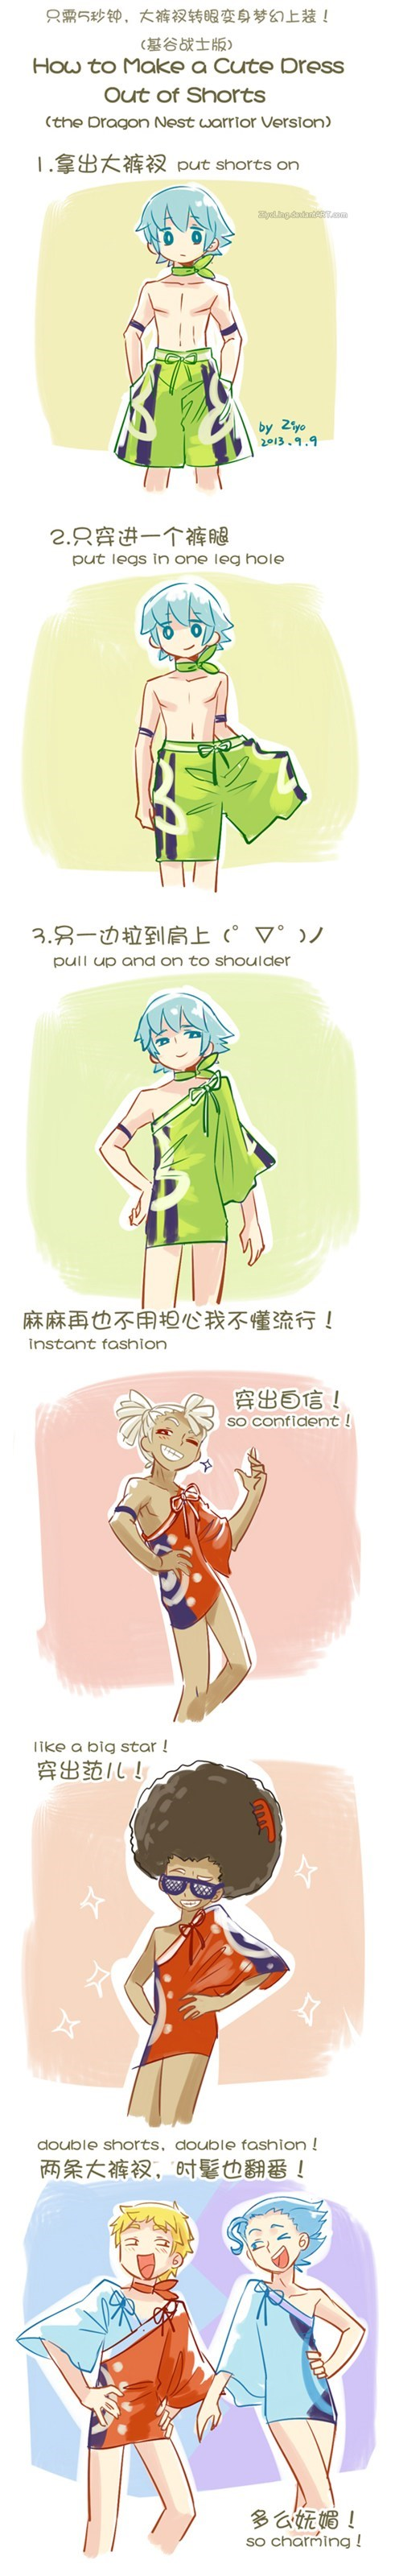 shorts,anime,Life Hack,DIY,dress